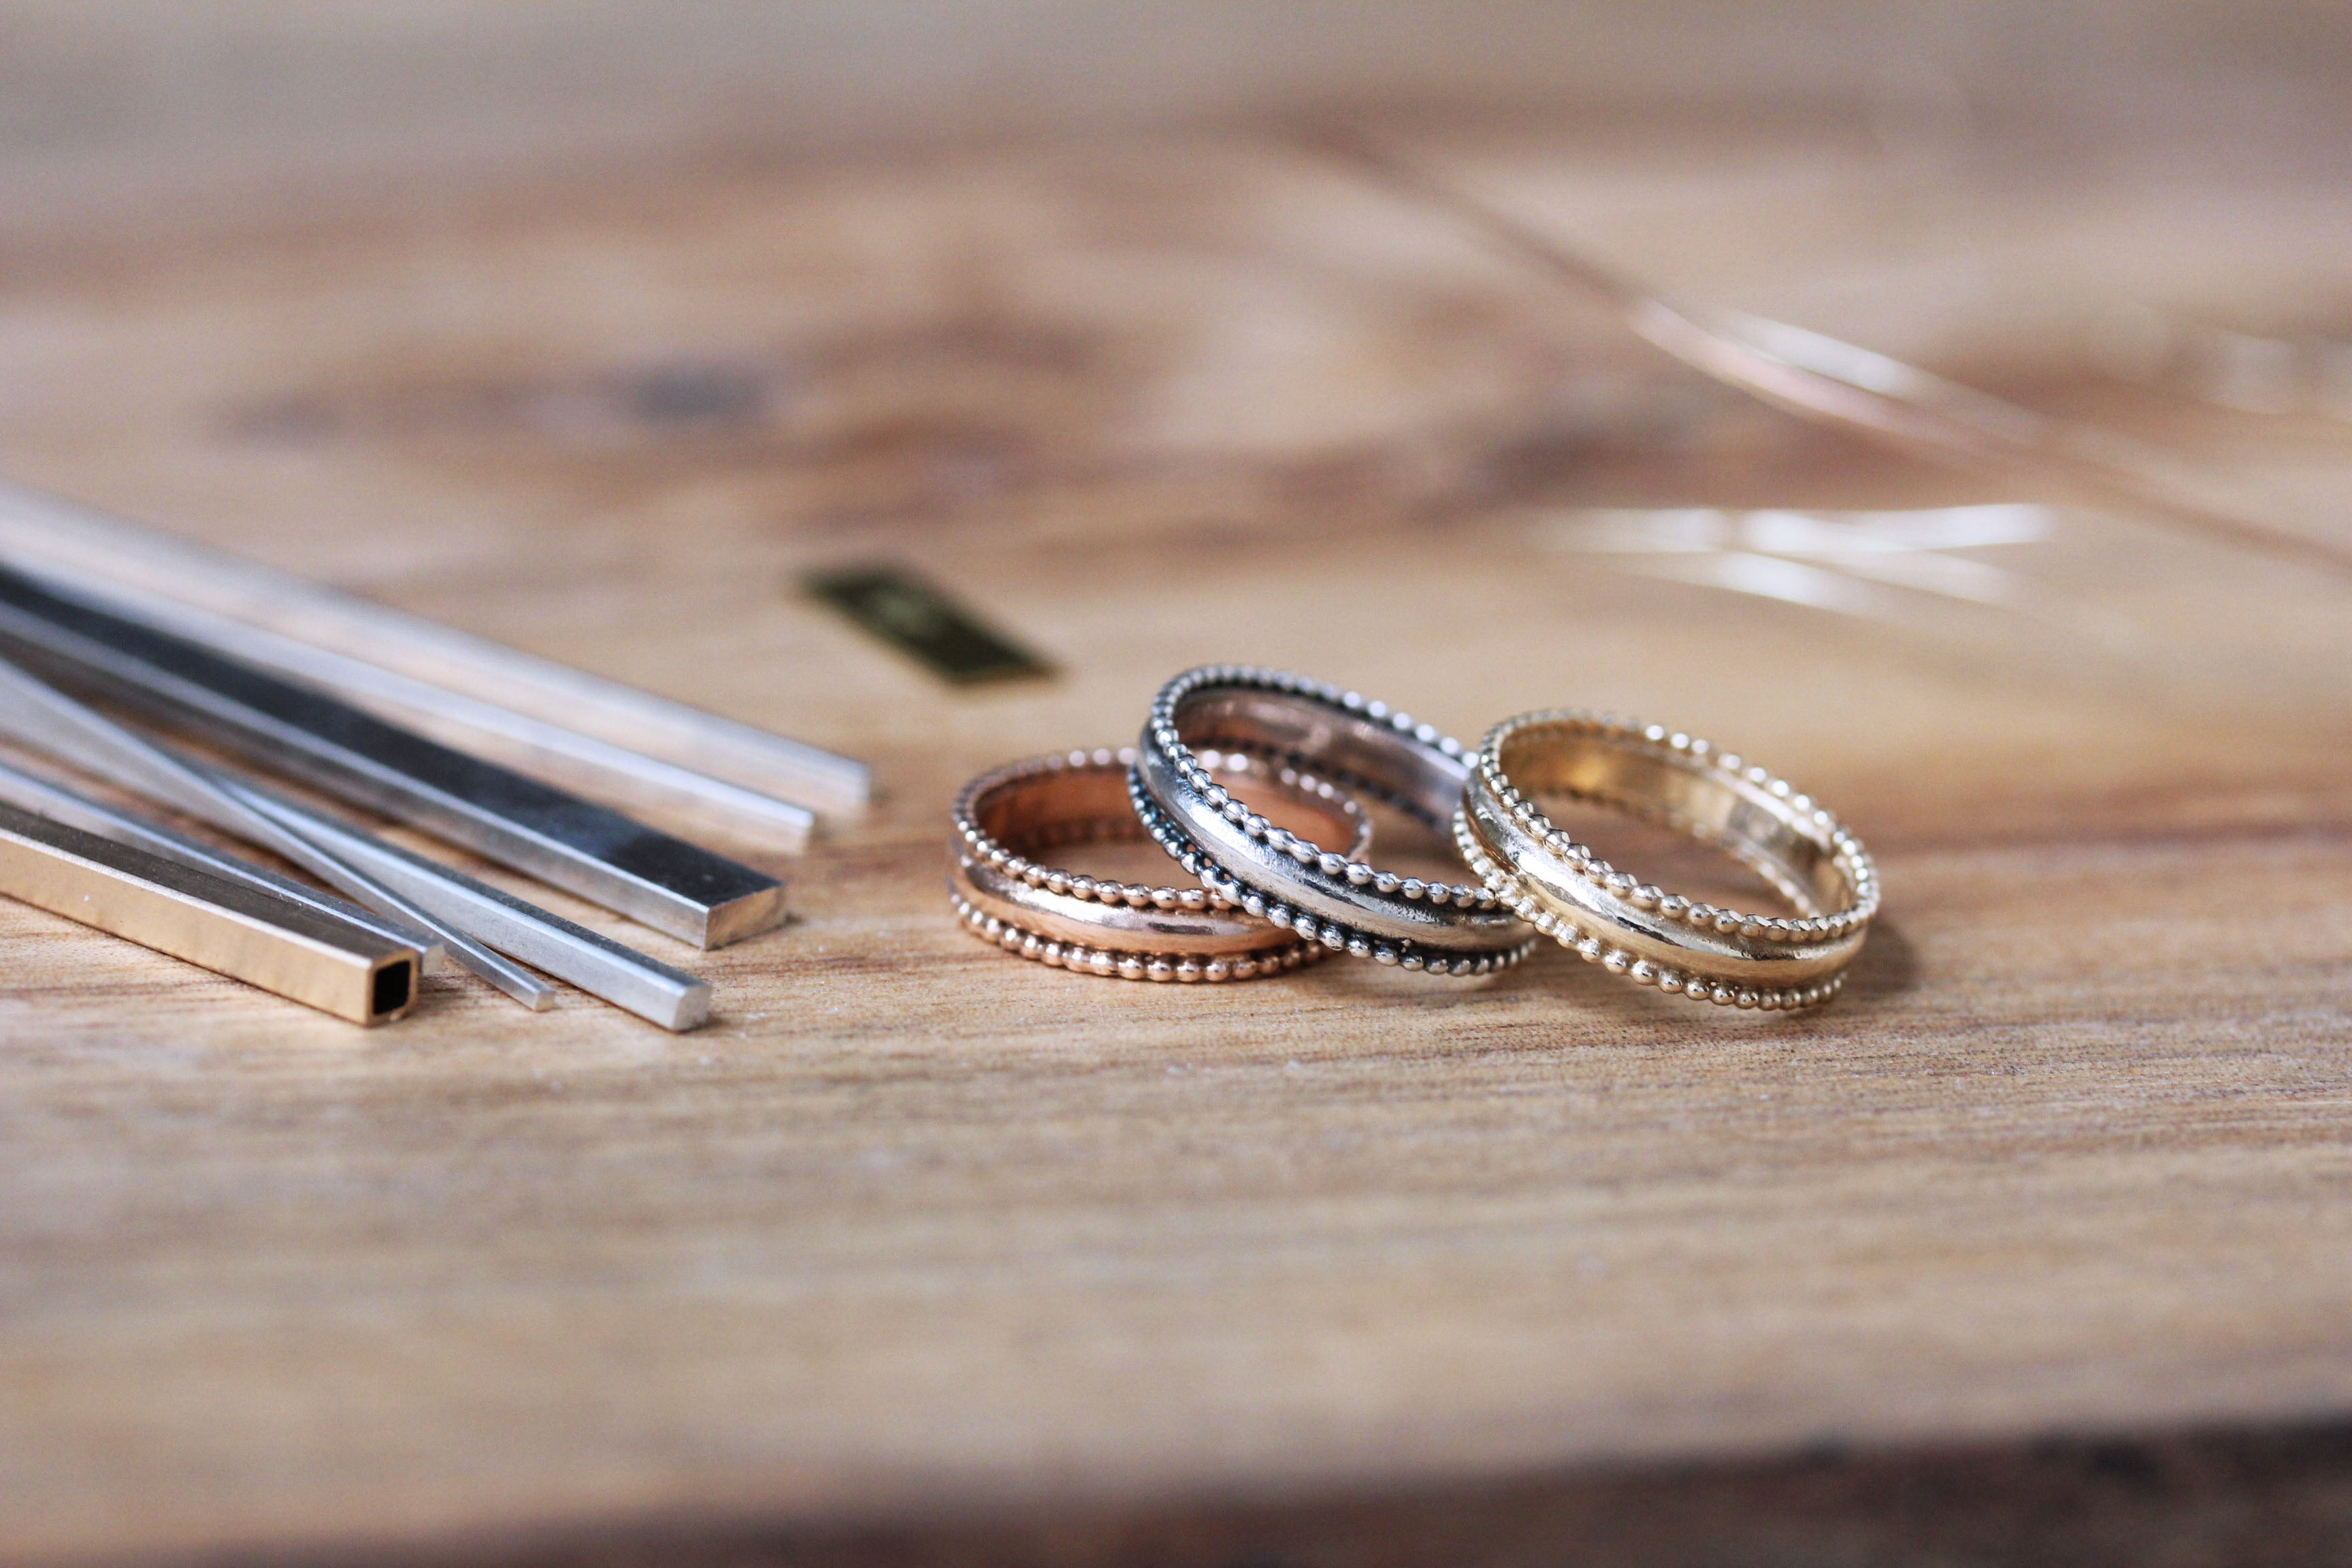 Rings in different metals